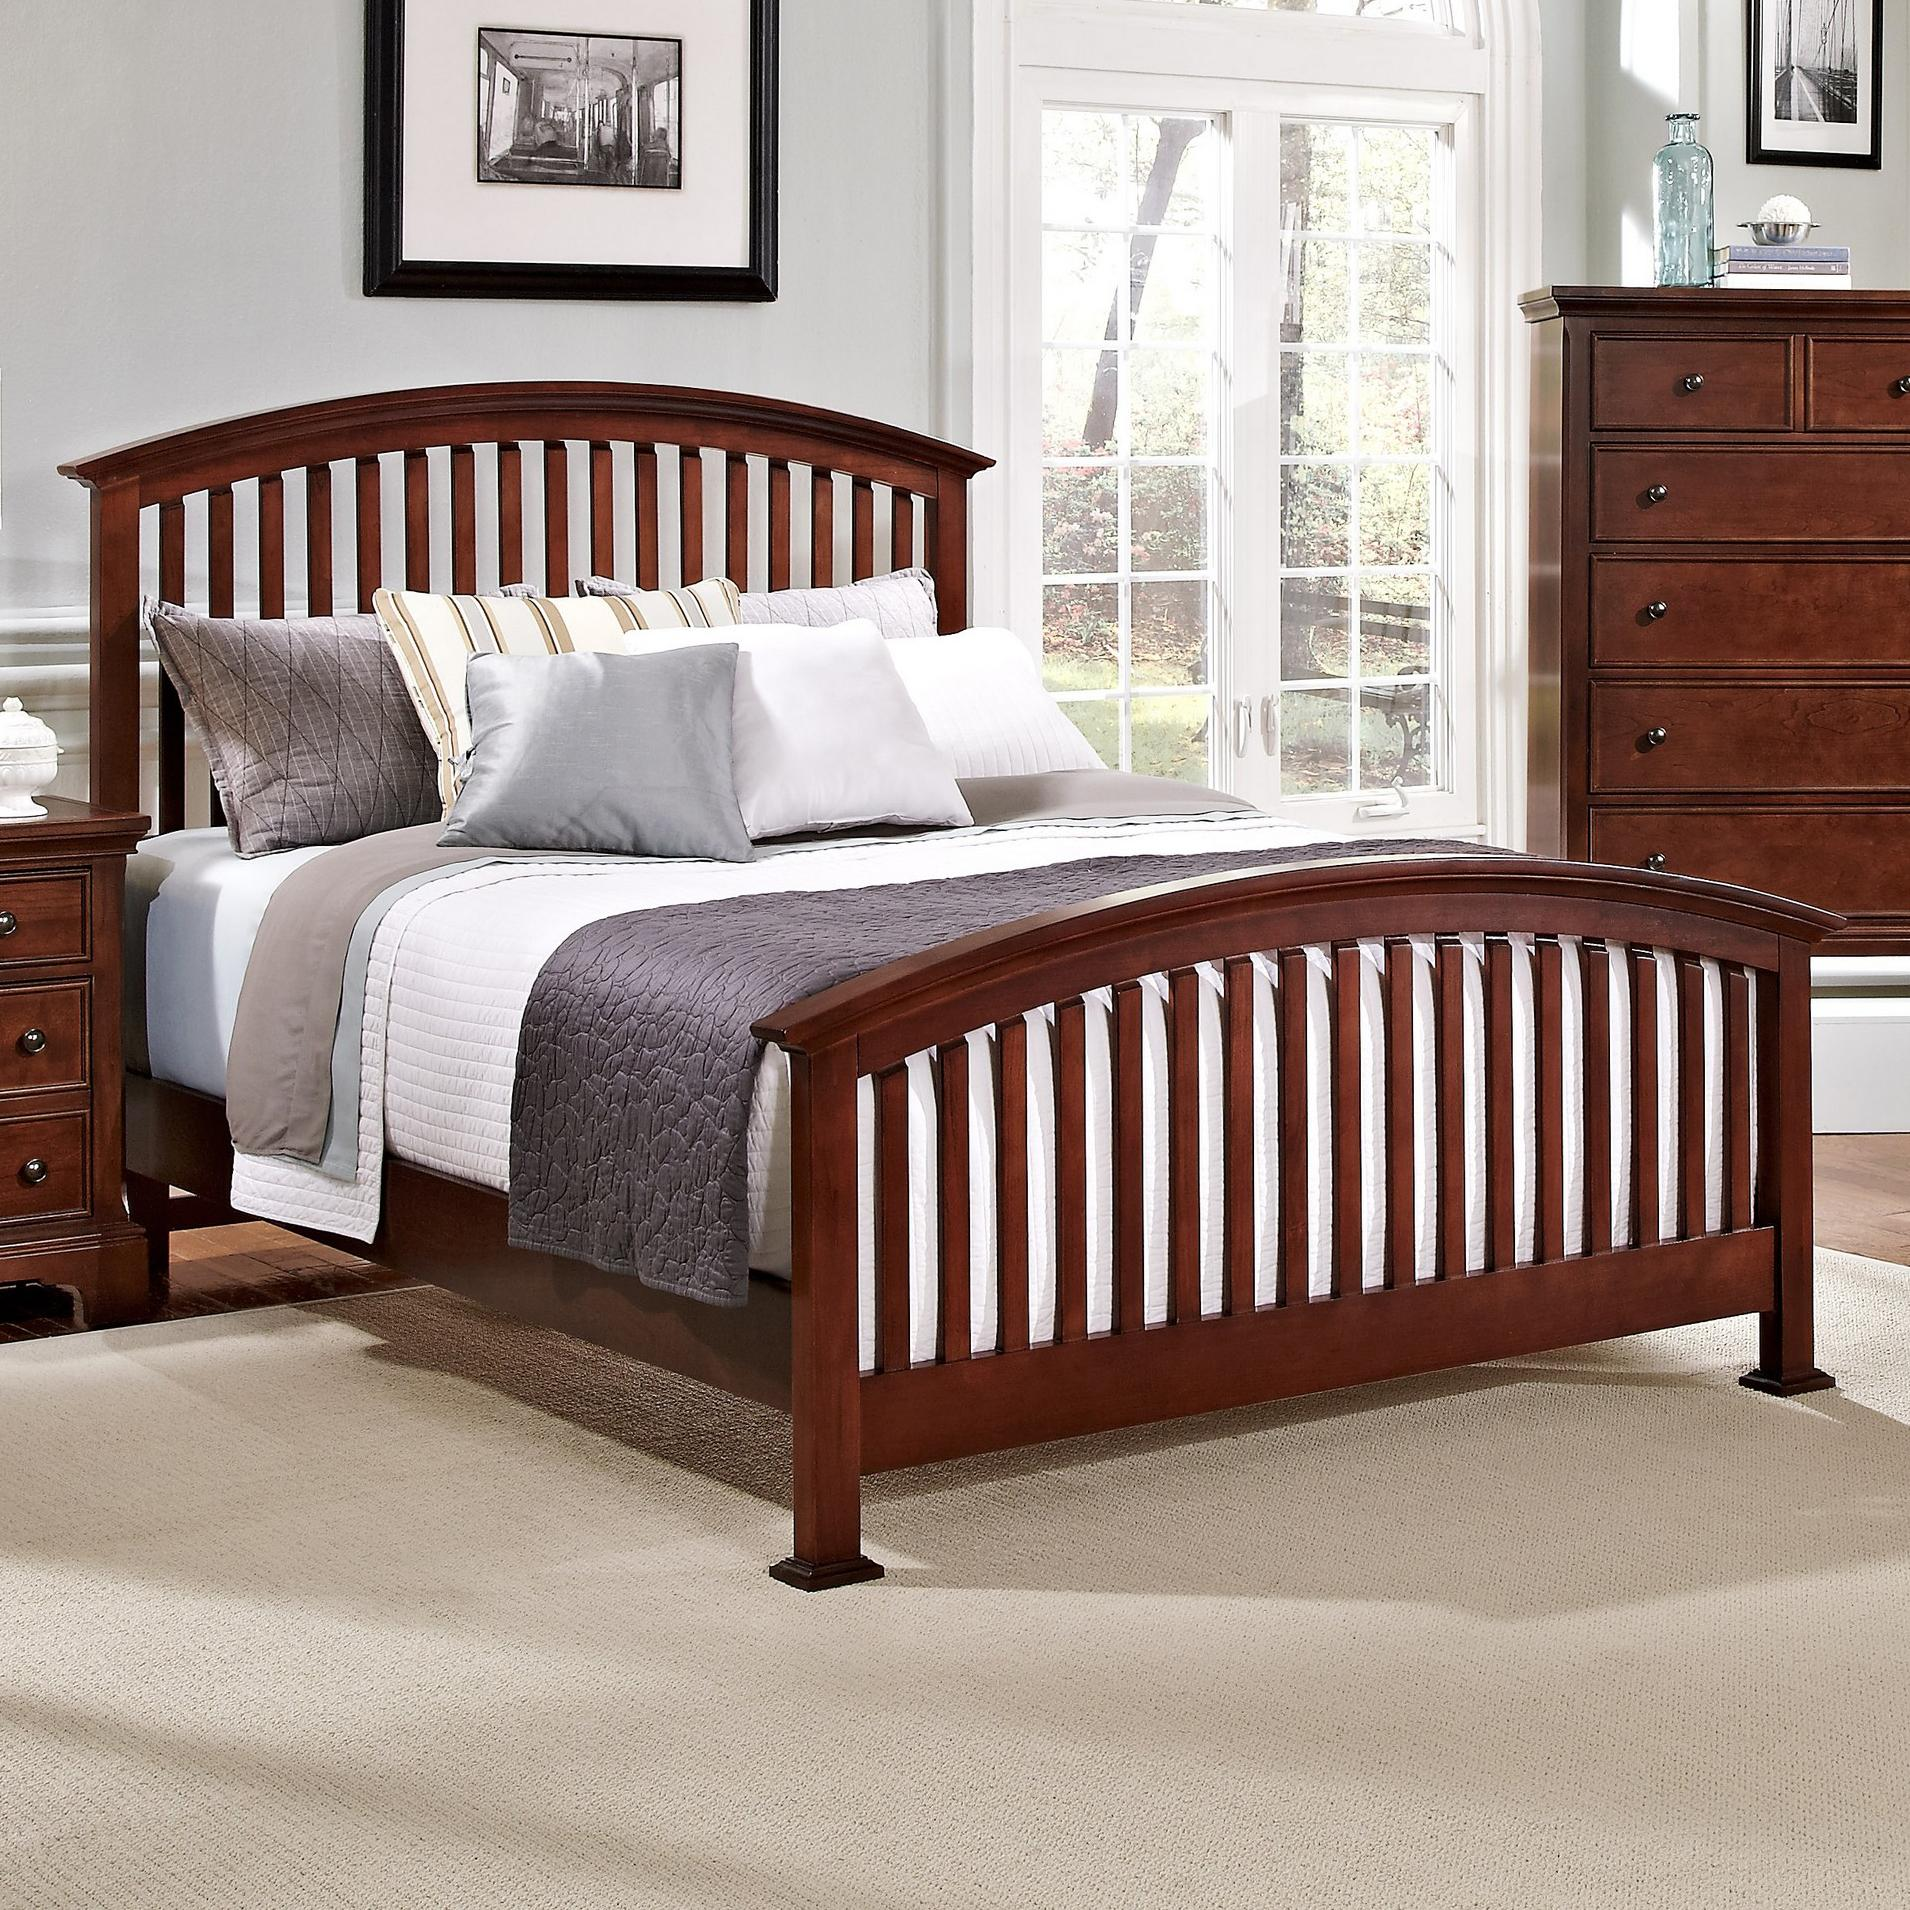 Vaughan Bassett Forsyth King Arched Bed - Item Number: BB77-669+966+922+MS1